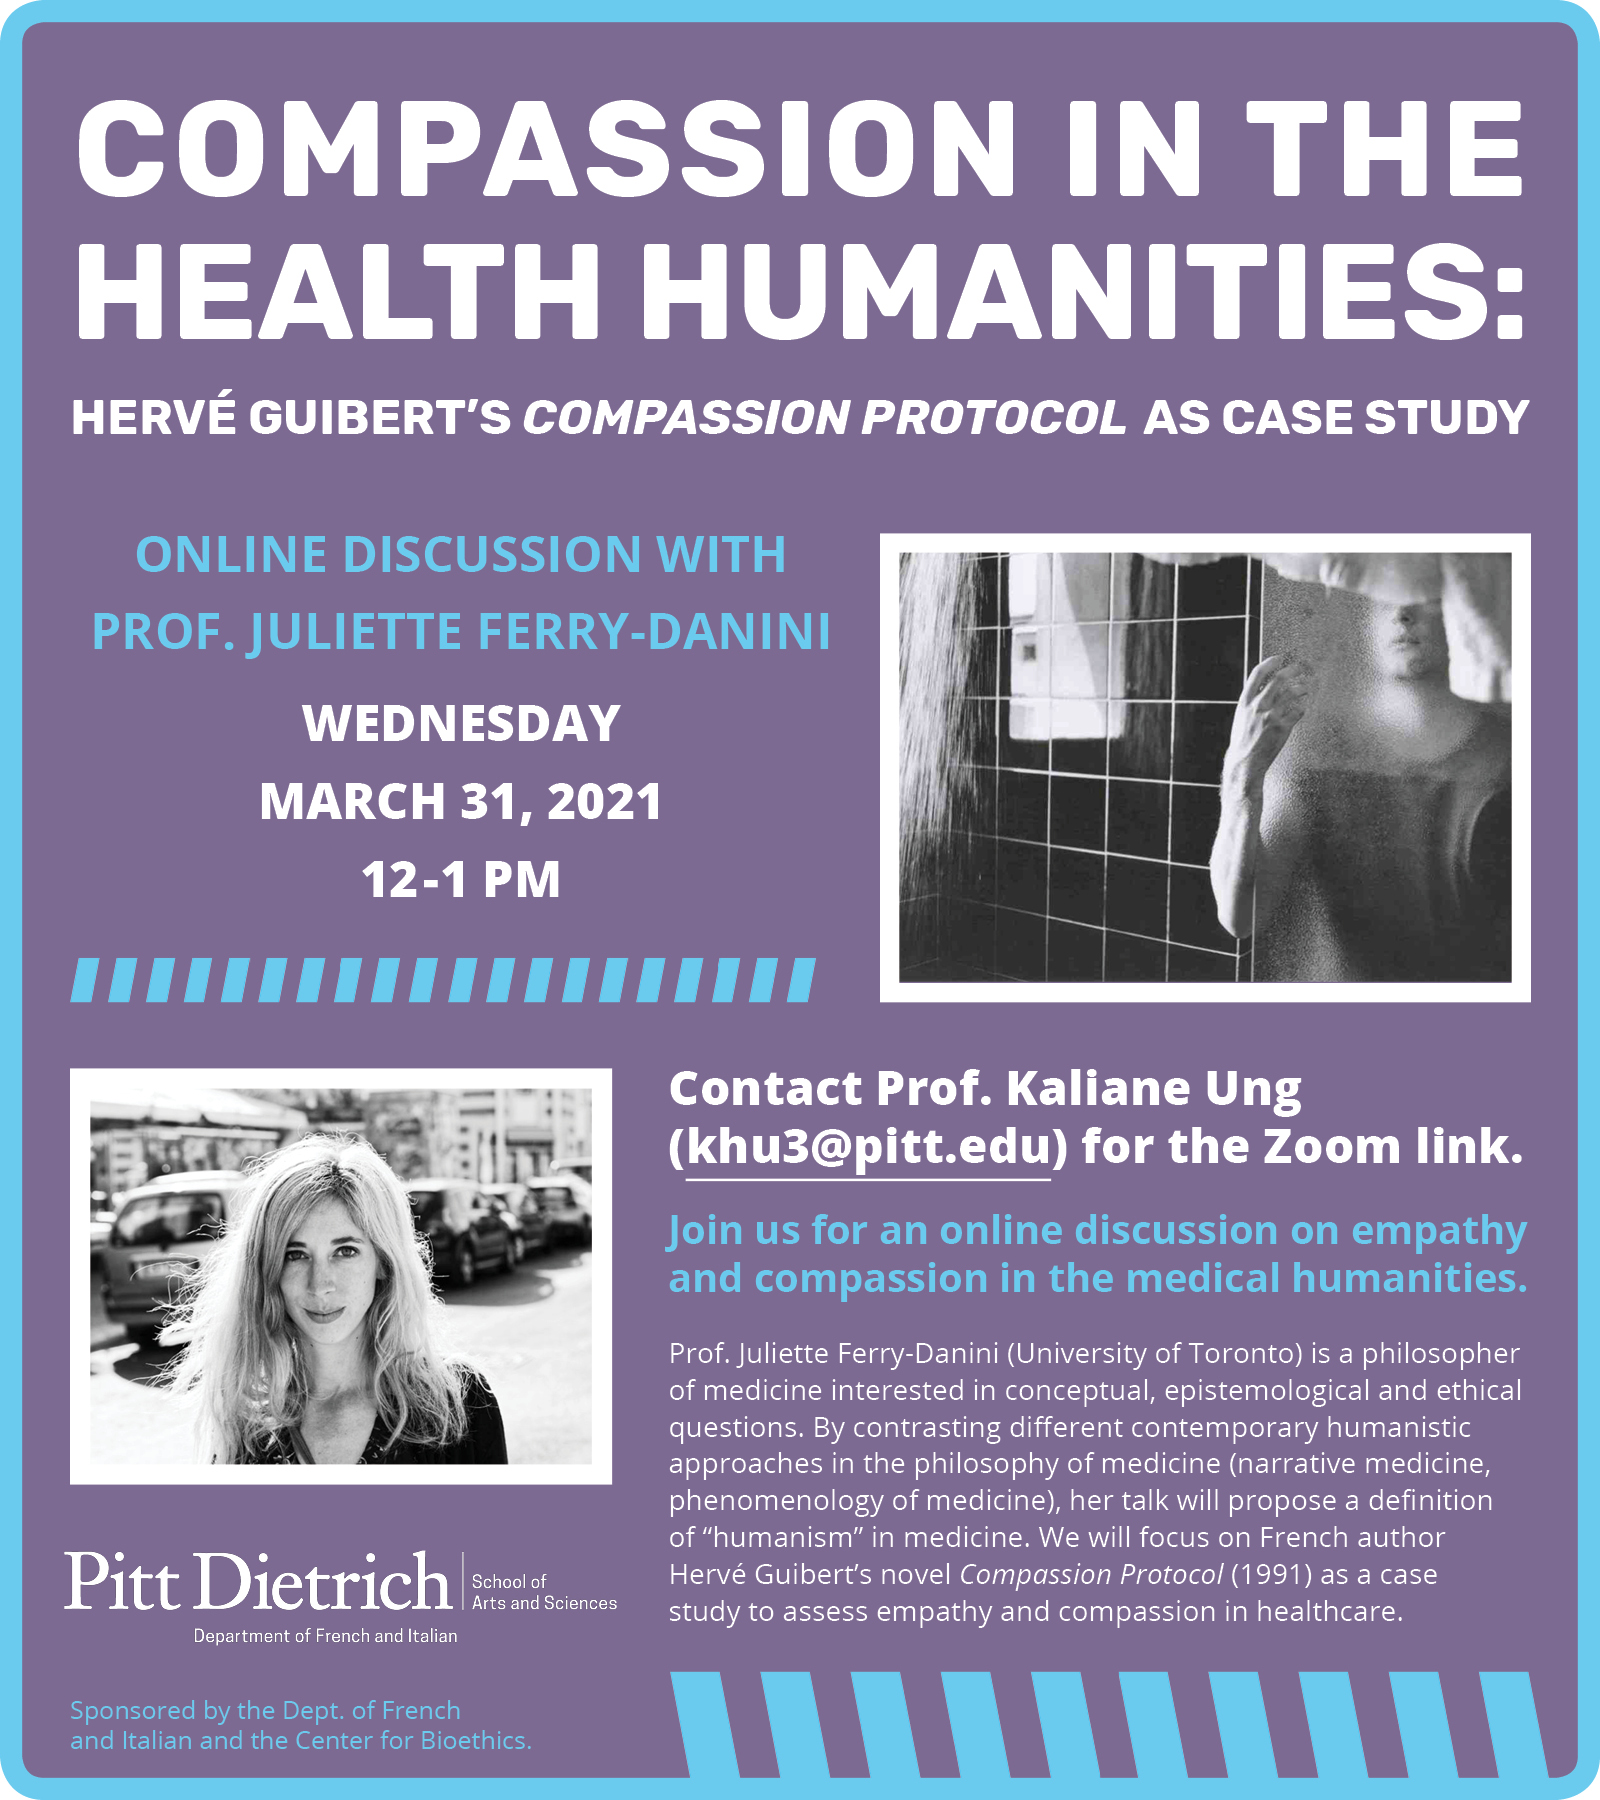 COMPASSION IN THE HEALTH HUMANITIES: HERVÉ GUIBERT'S COMPASSION PROTOCOL AS CASE STUDY event details in blue and white text with a lavender background